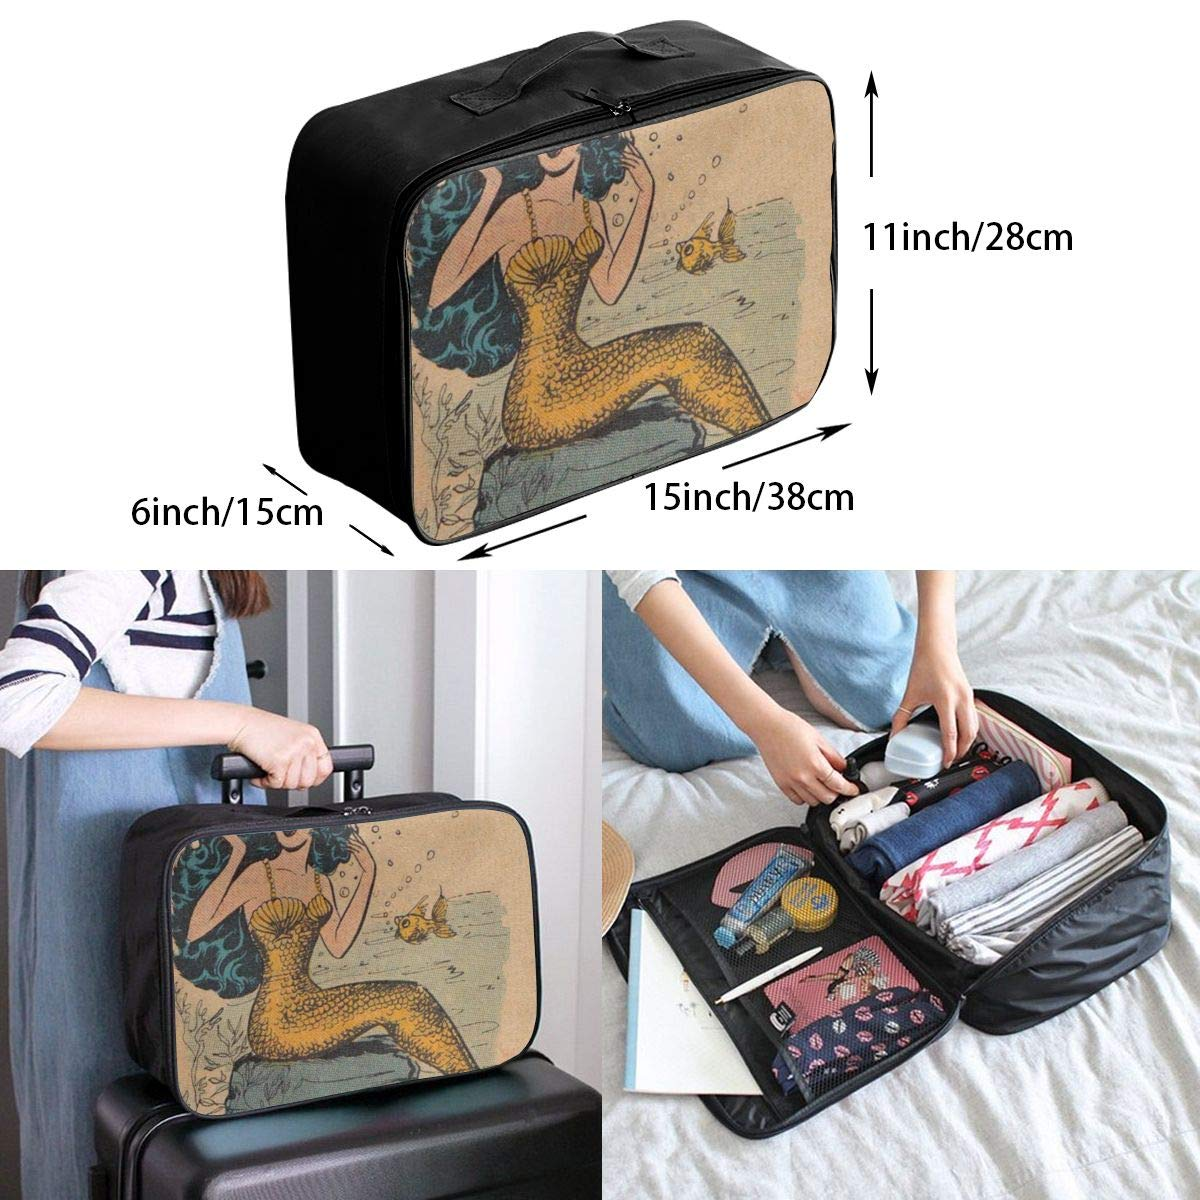 Vintage Mermaid With Blue Hair Travel Lightweight Waterproof Foldable Storage Carry Luggage Duffle Tote Bag Large Capacity In Trolley Handle Bags 6x11x15 Inch